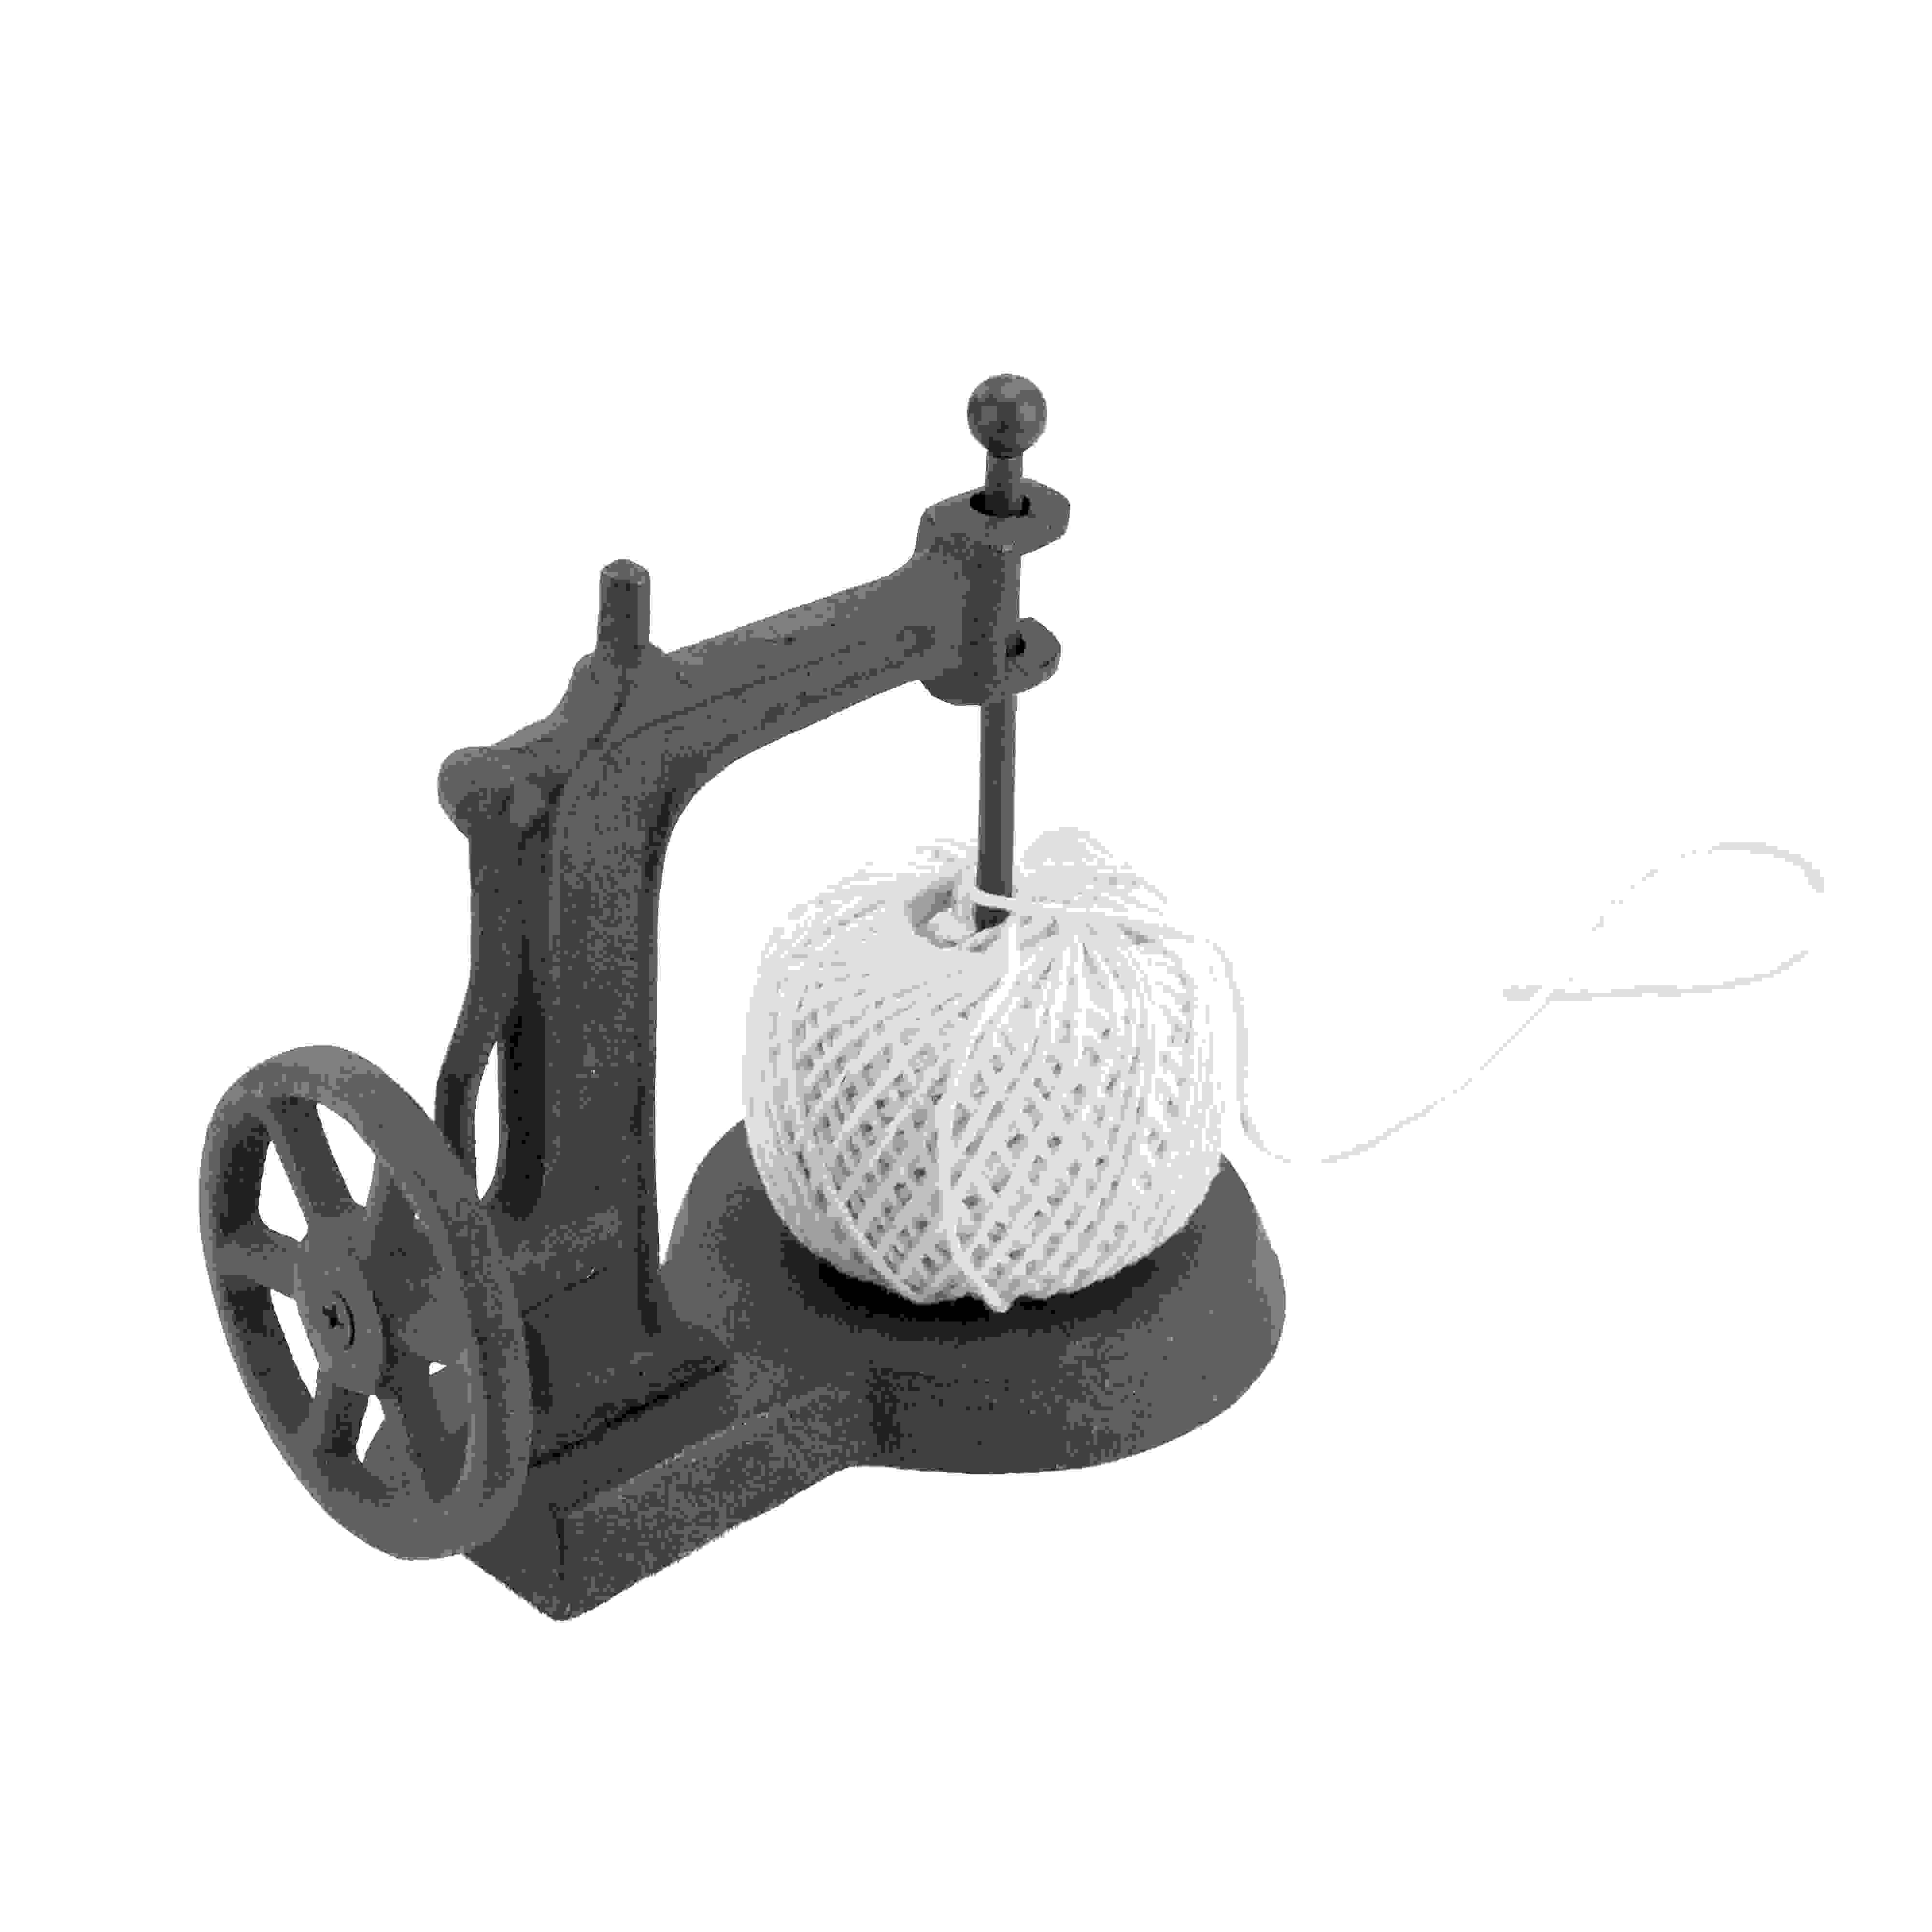 SEWING MACHINE STRING HOLDER